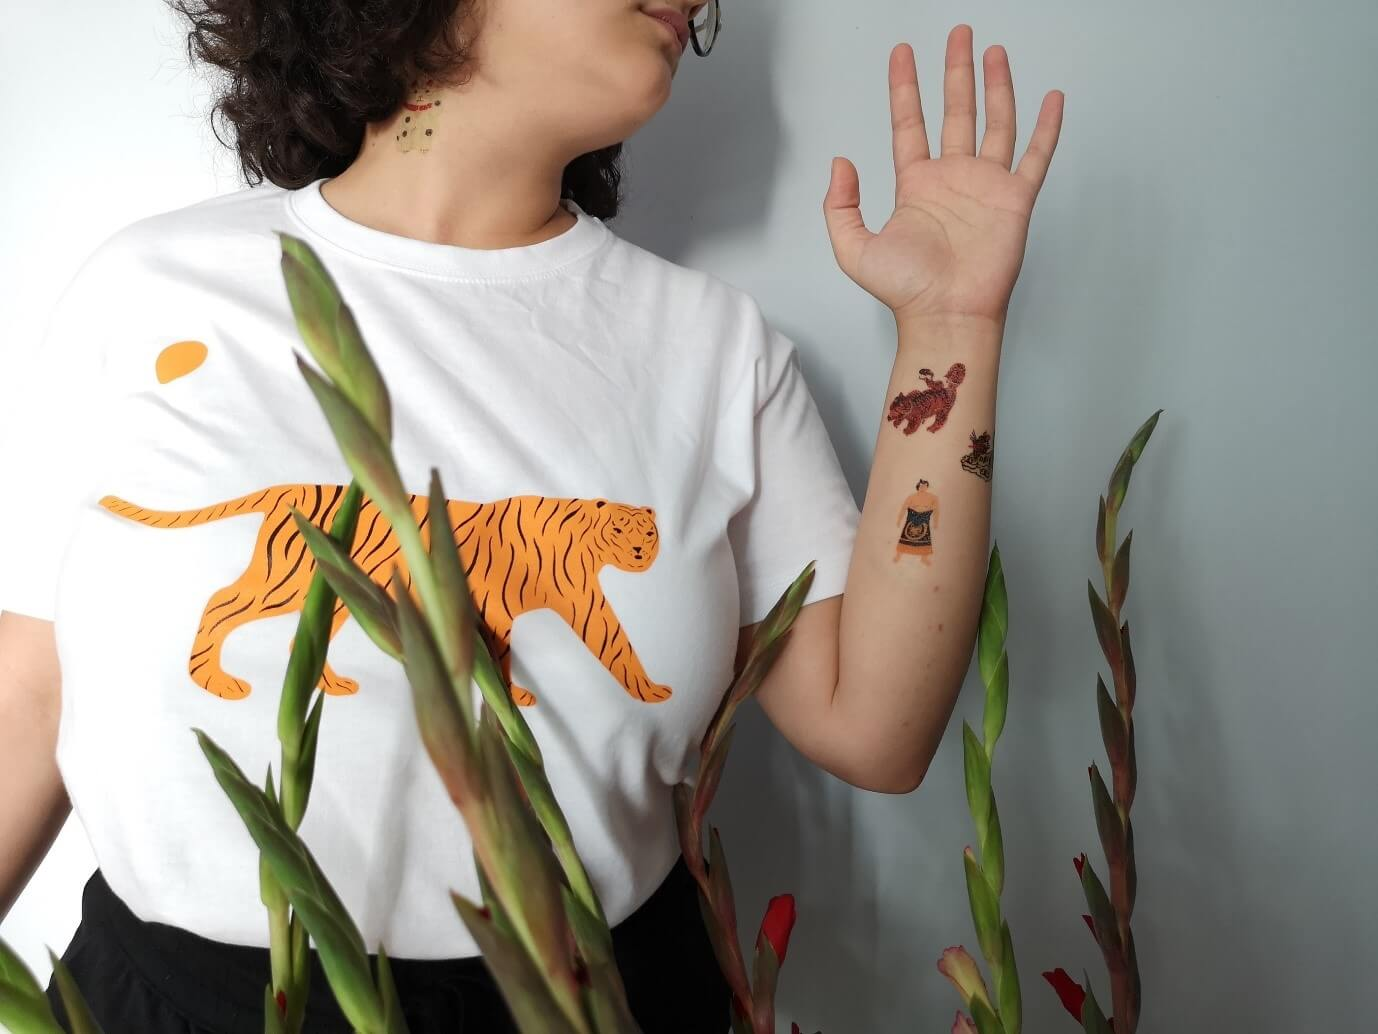 Amal Al-Shahari shows off her temporary tattoos dress in a t-shirt with tiger design